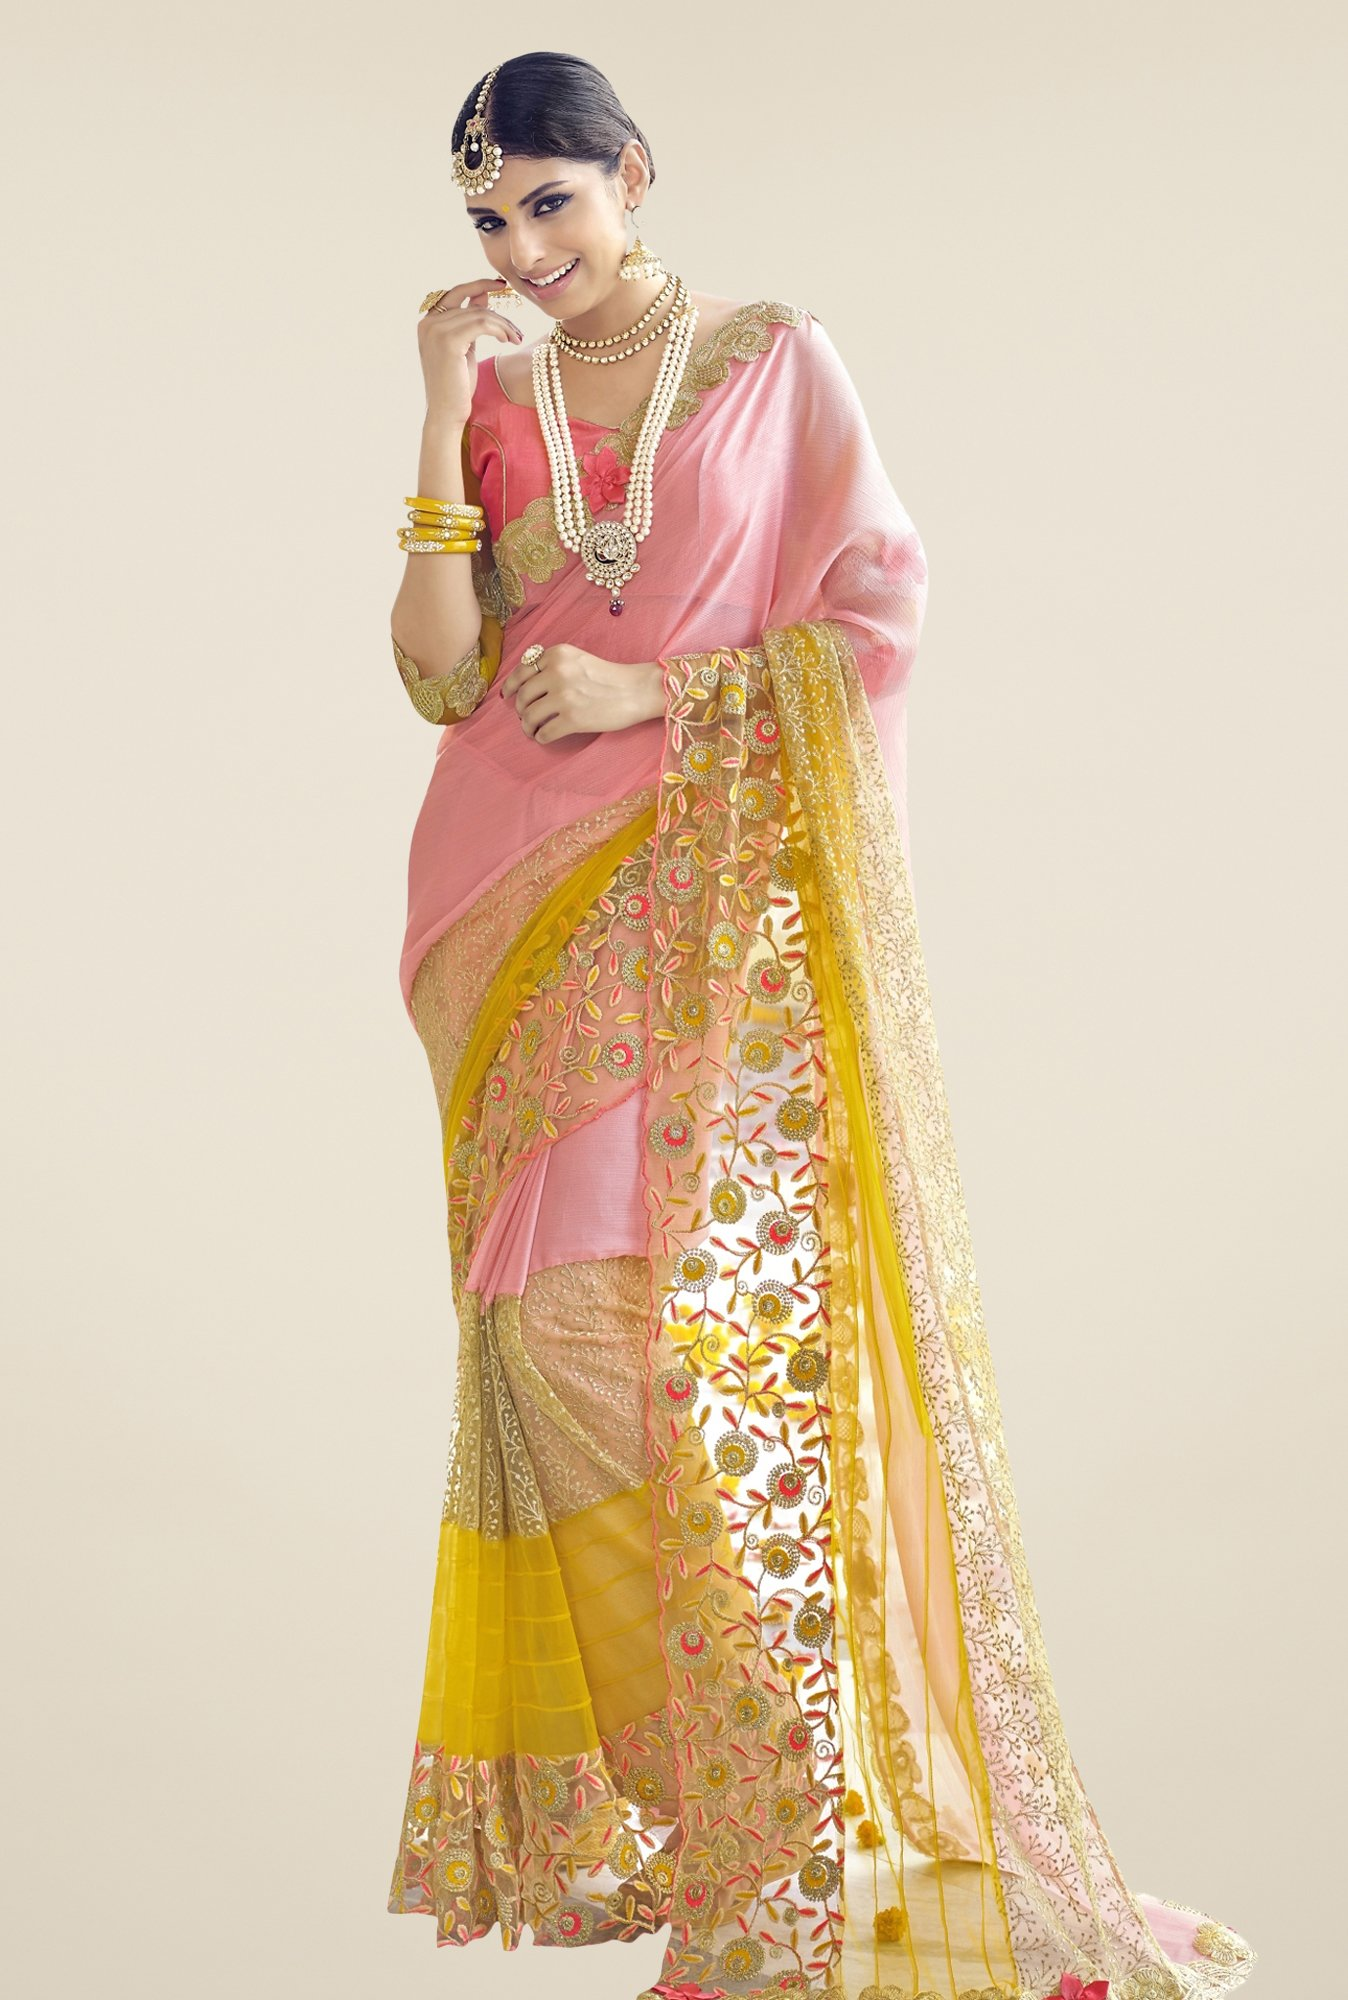 Triveni Pink & Yellow Embroidered Faux Georgette Net Saree